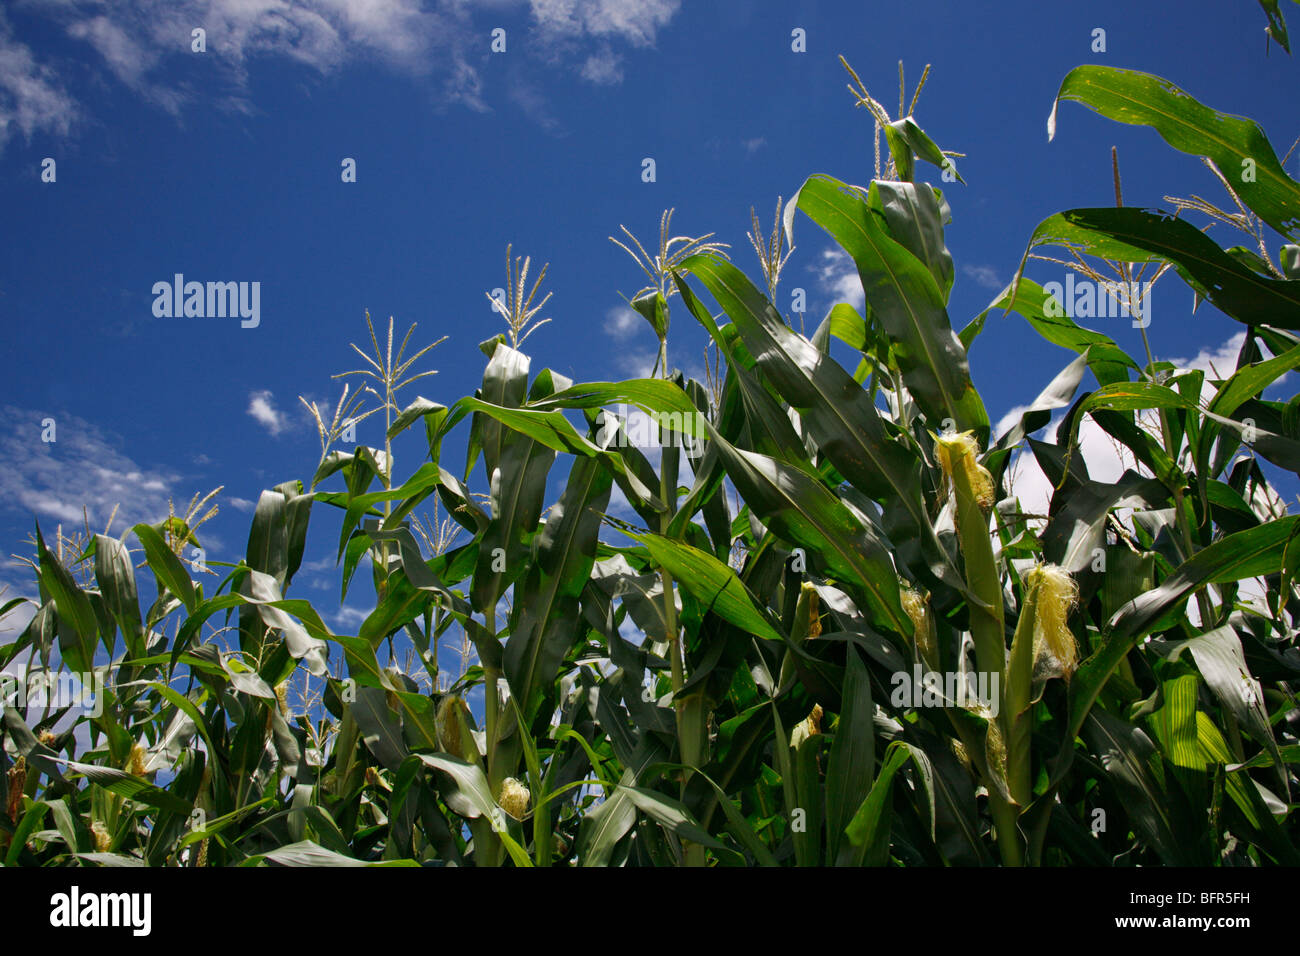 Low-angle view of Maize plants almost ready for harvest - Stock Image